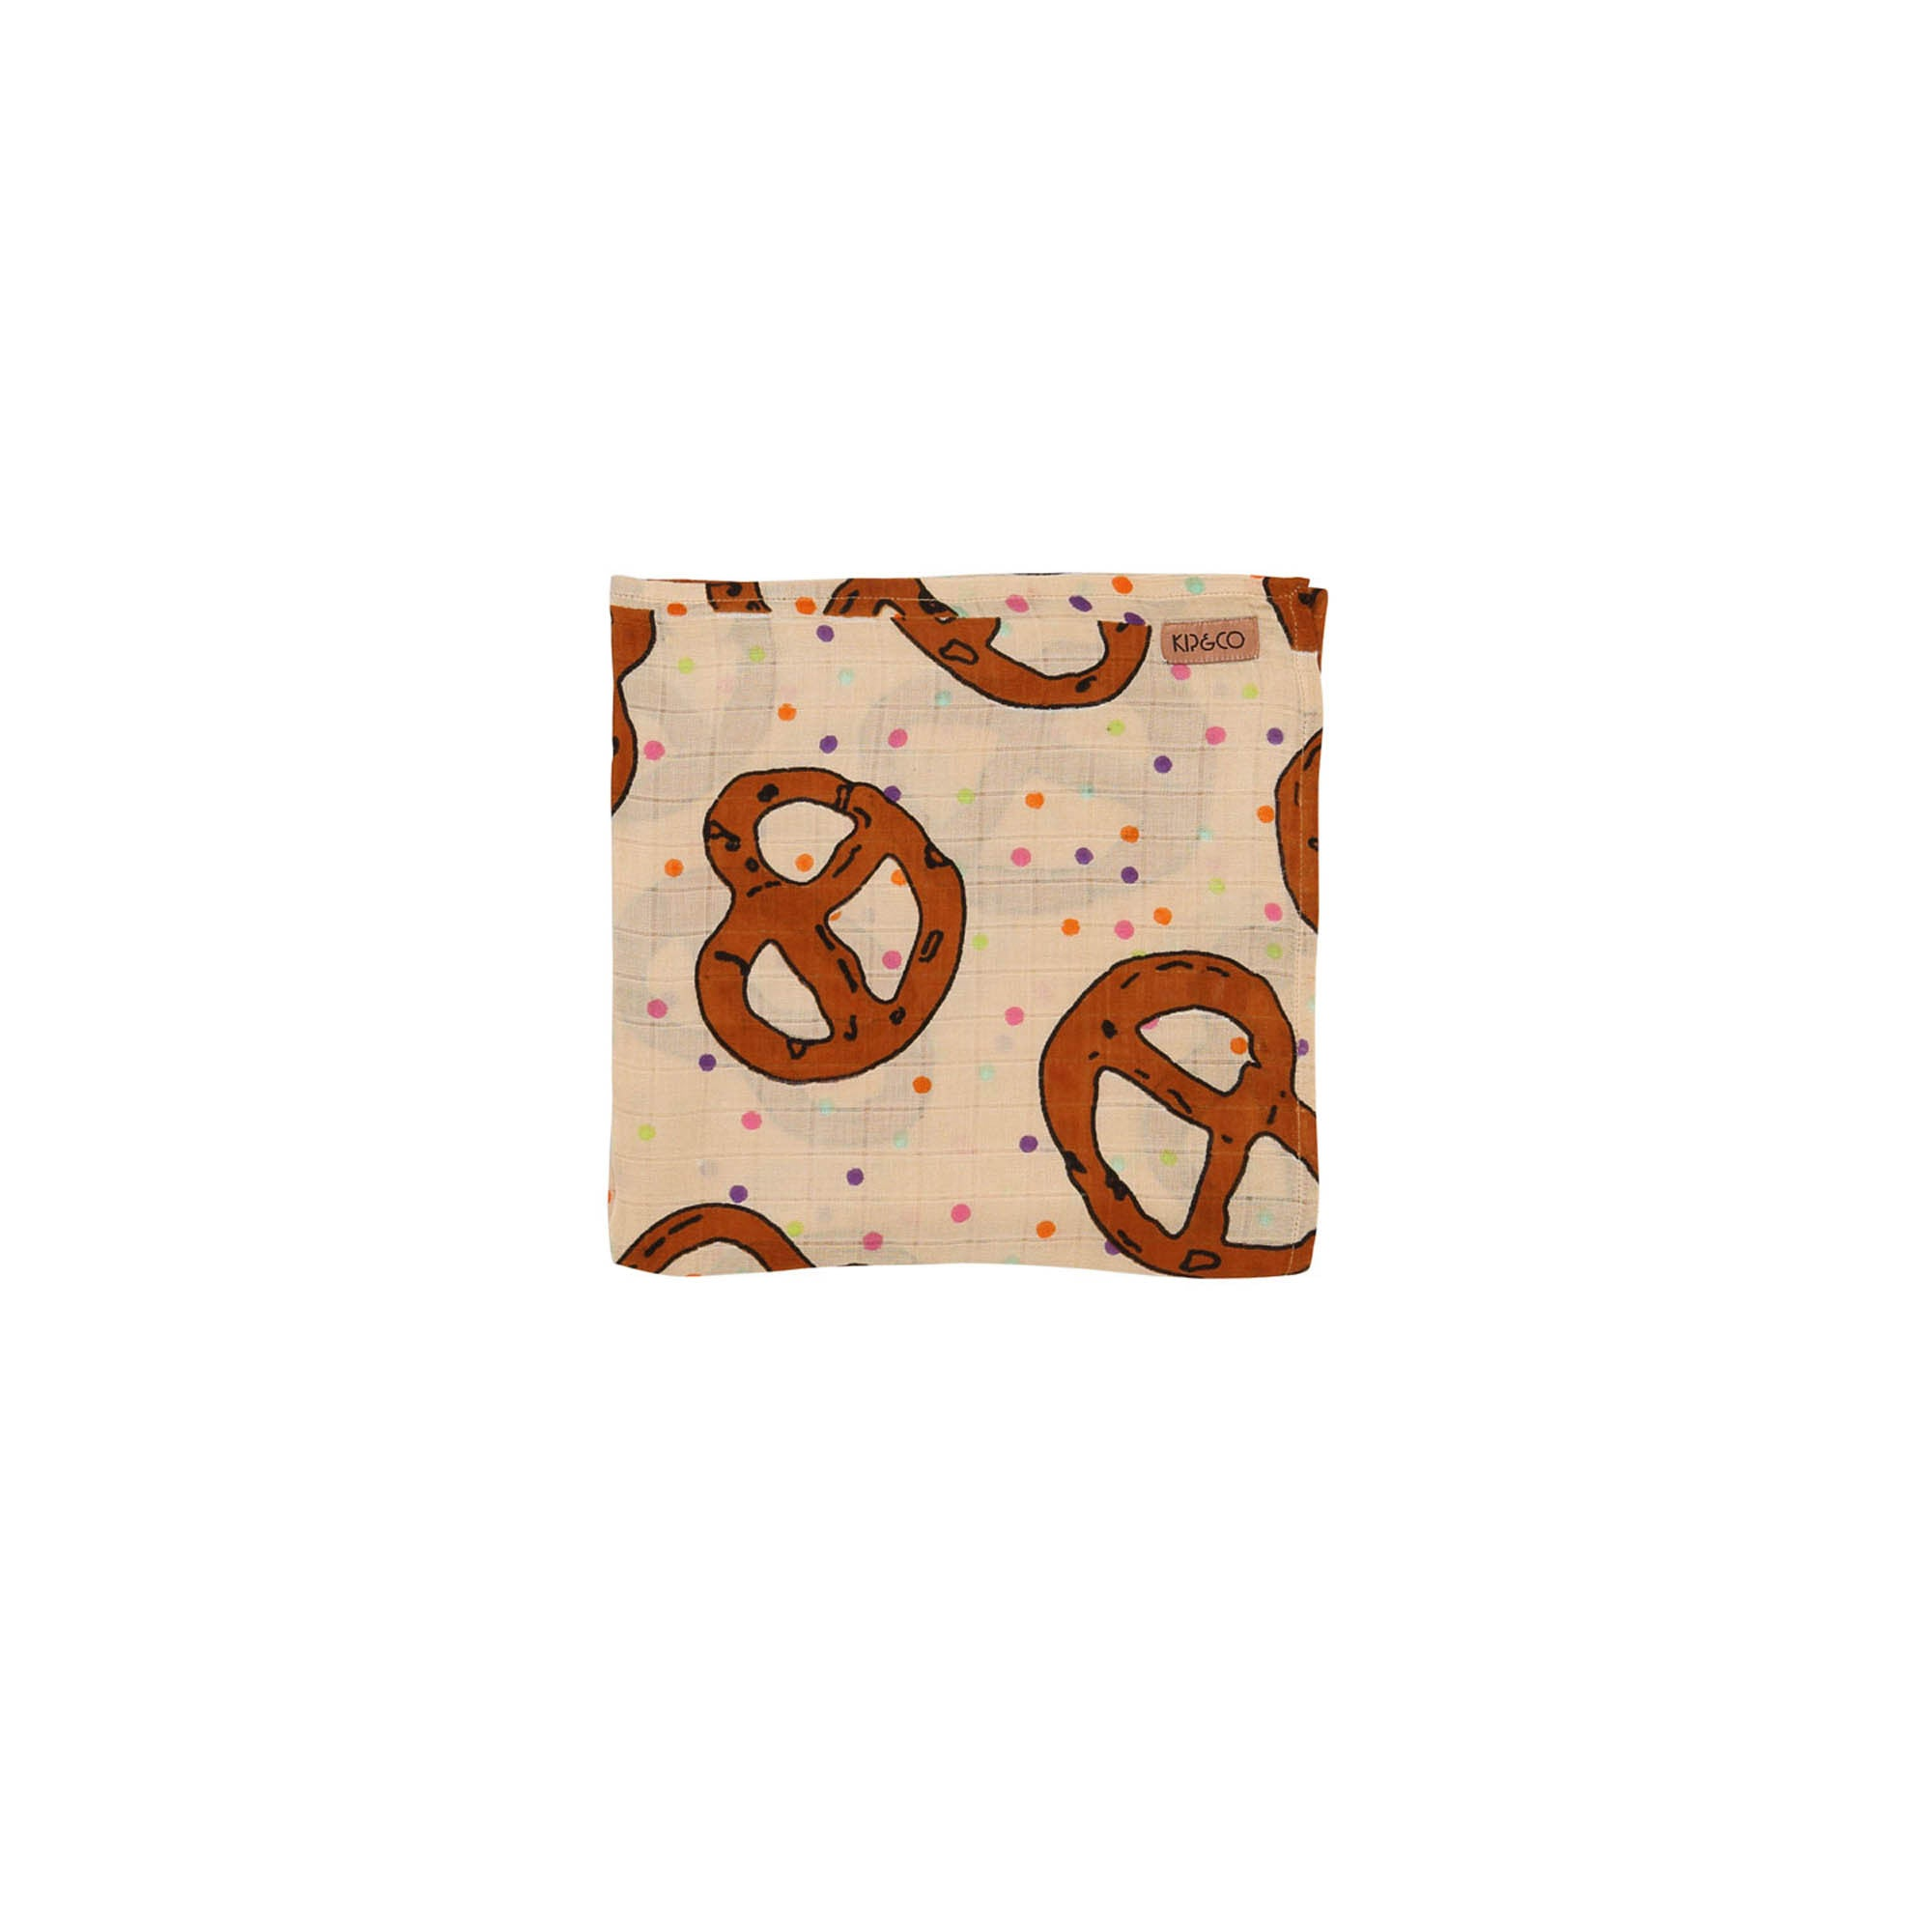 SS16 Bottlo and Pretzel Nap Wrap (pack of 2 swaddles)